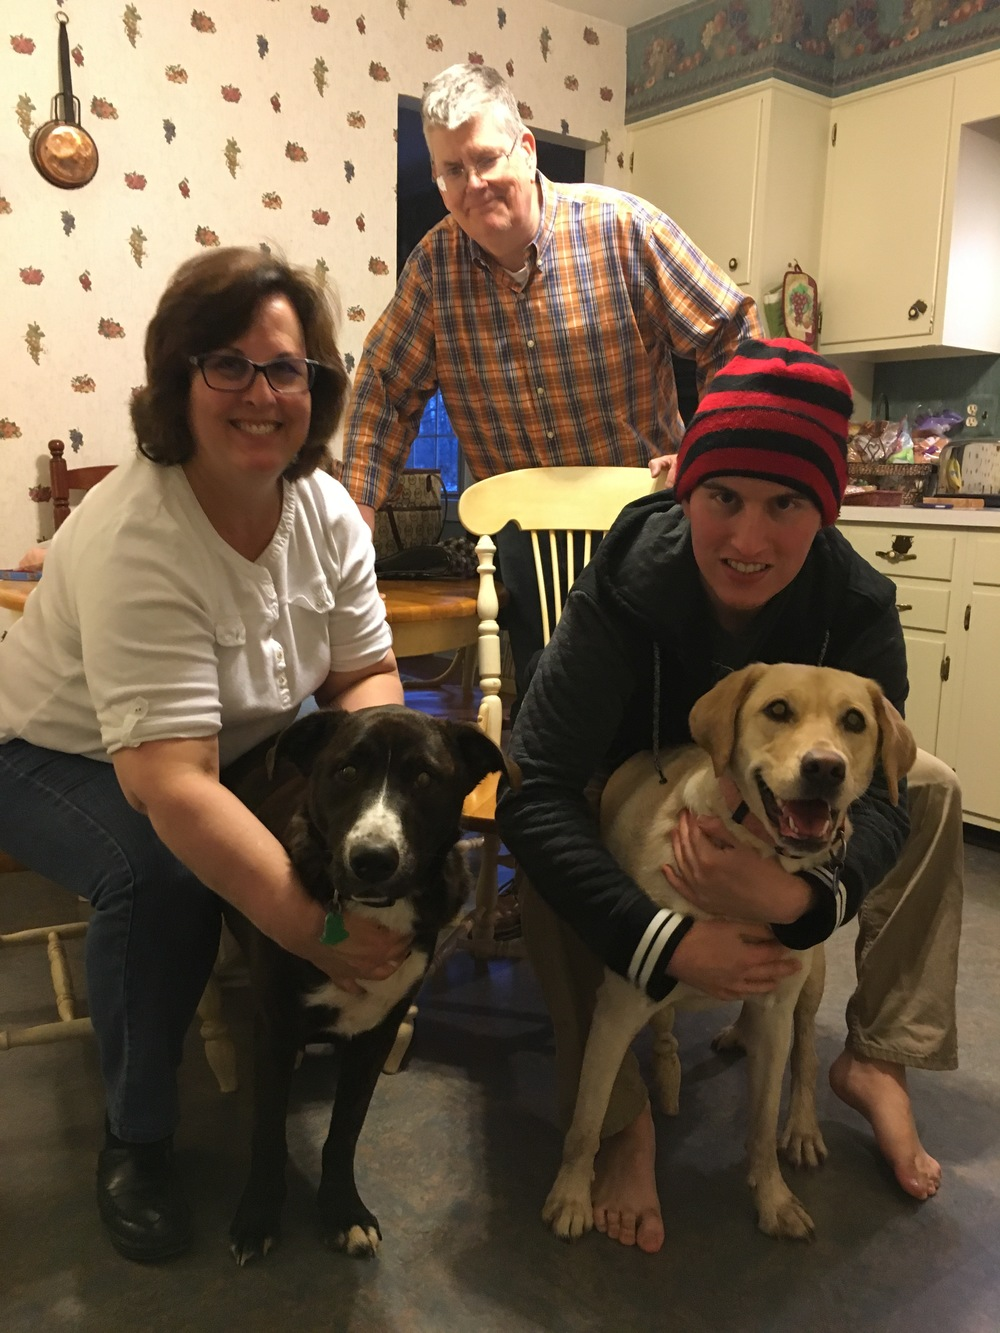 Bruno with his family and new fur sister, Lucy, on the right.